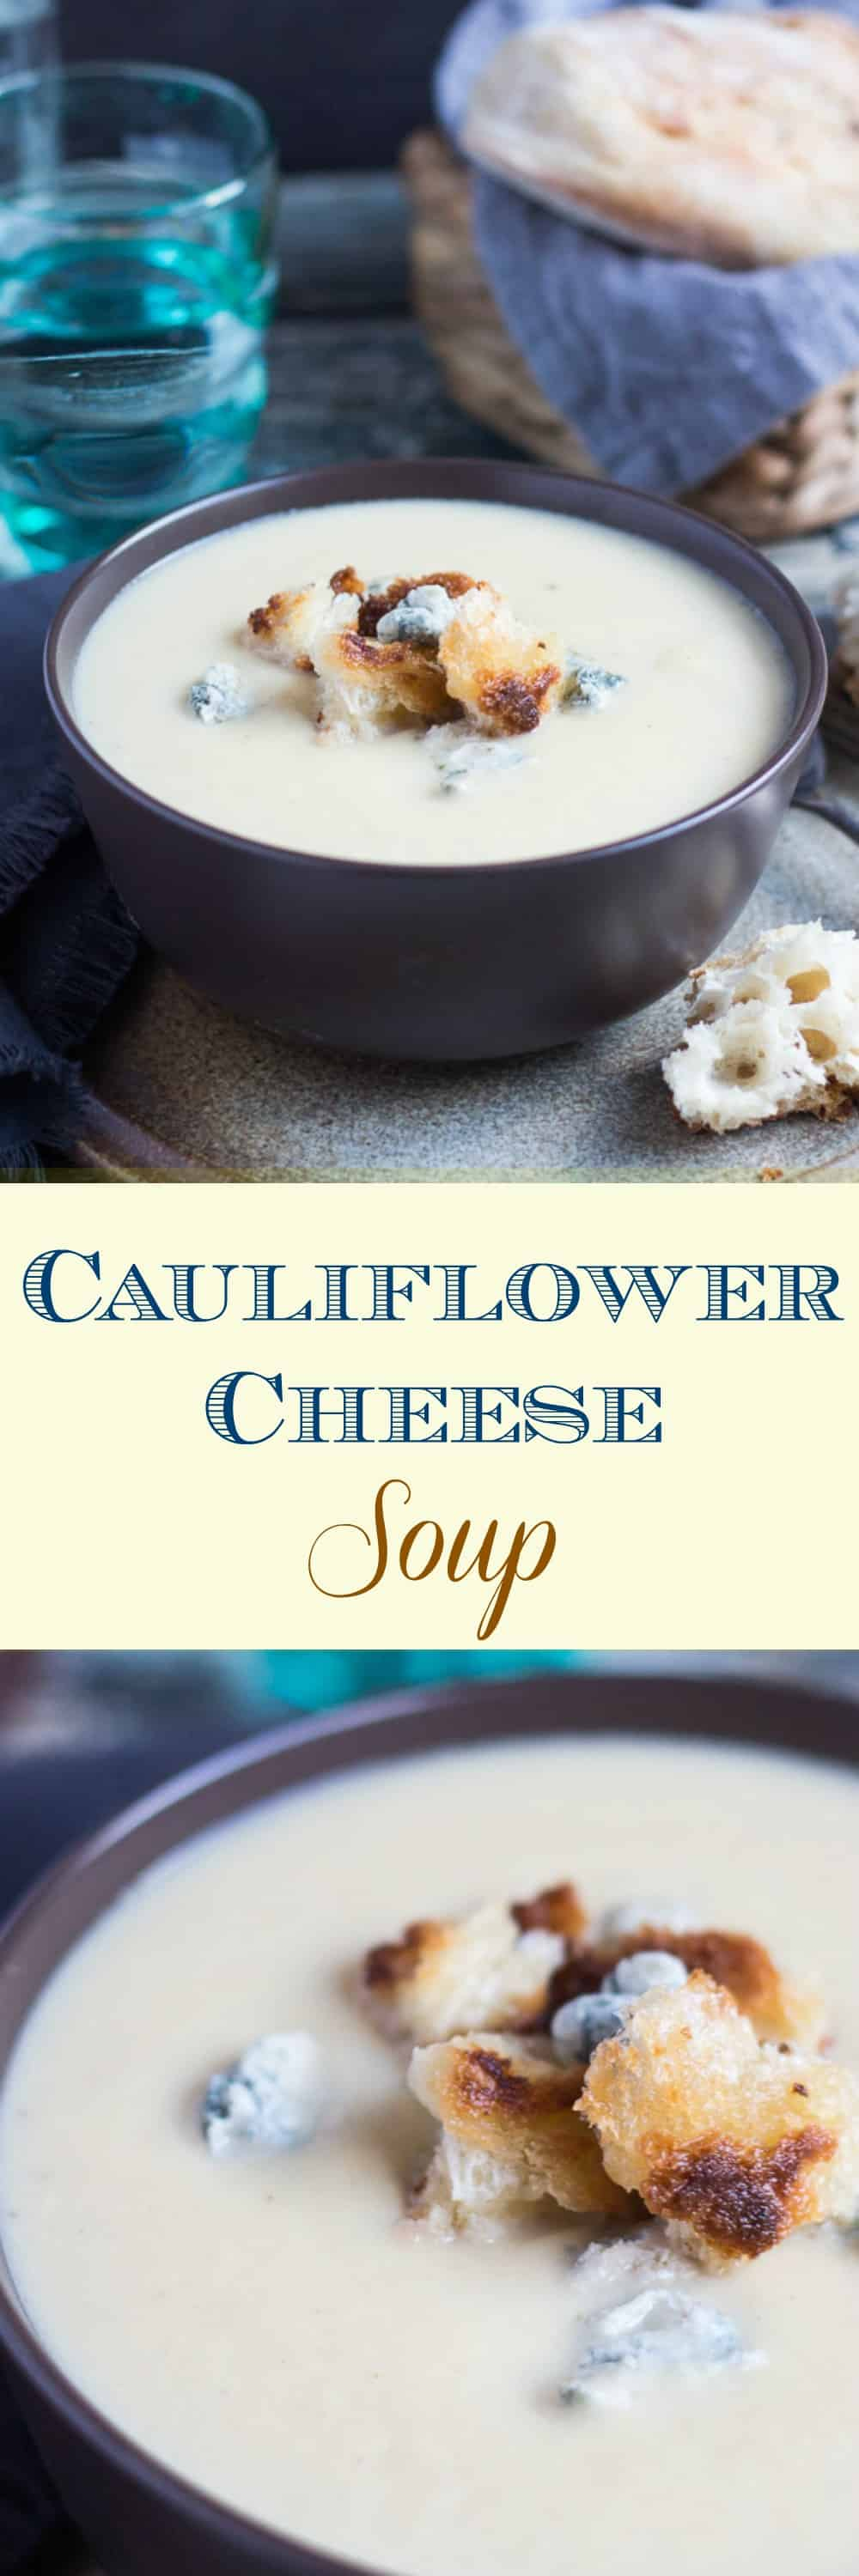 Creamy Cauliflower Cheese Soup. A steaming bowl is perfect for banishing the winter blues.